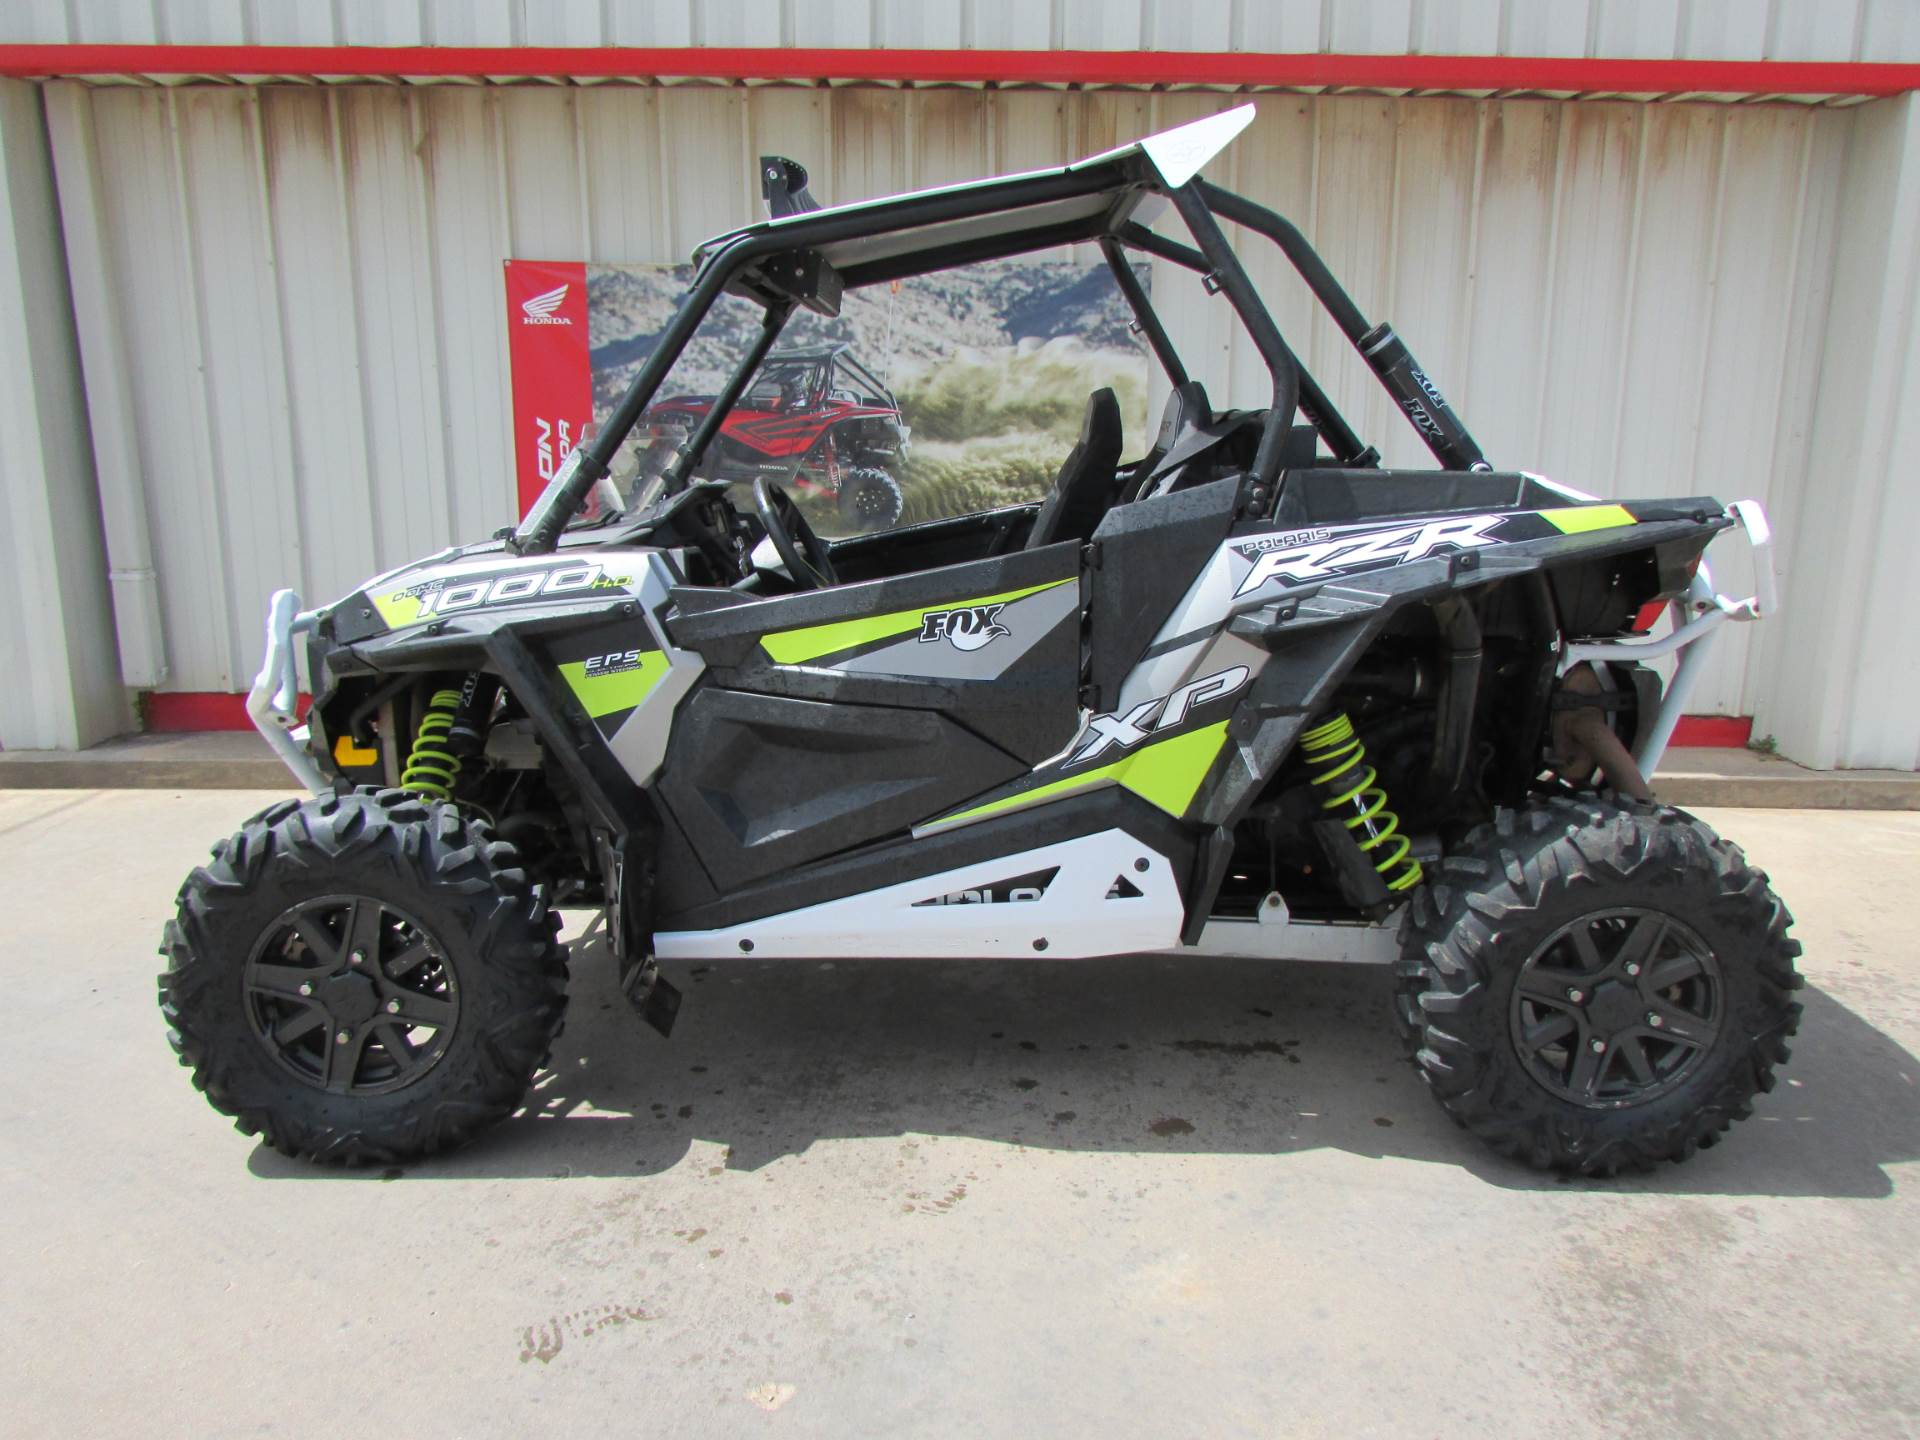 2015 Polaris RZR® XP 1000 EPS in Wichita Falls, Texas - Photo 1